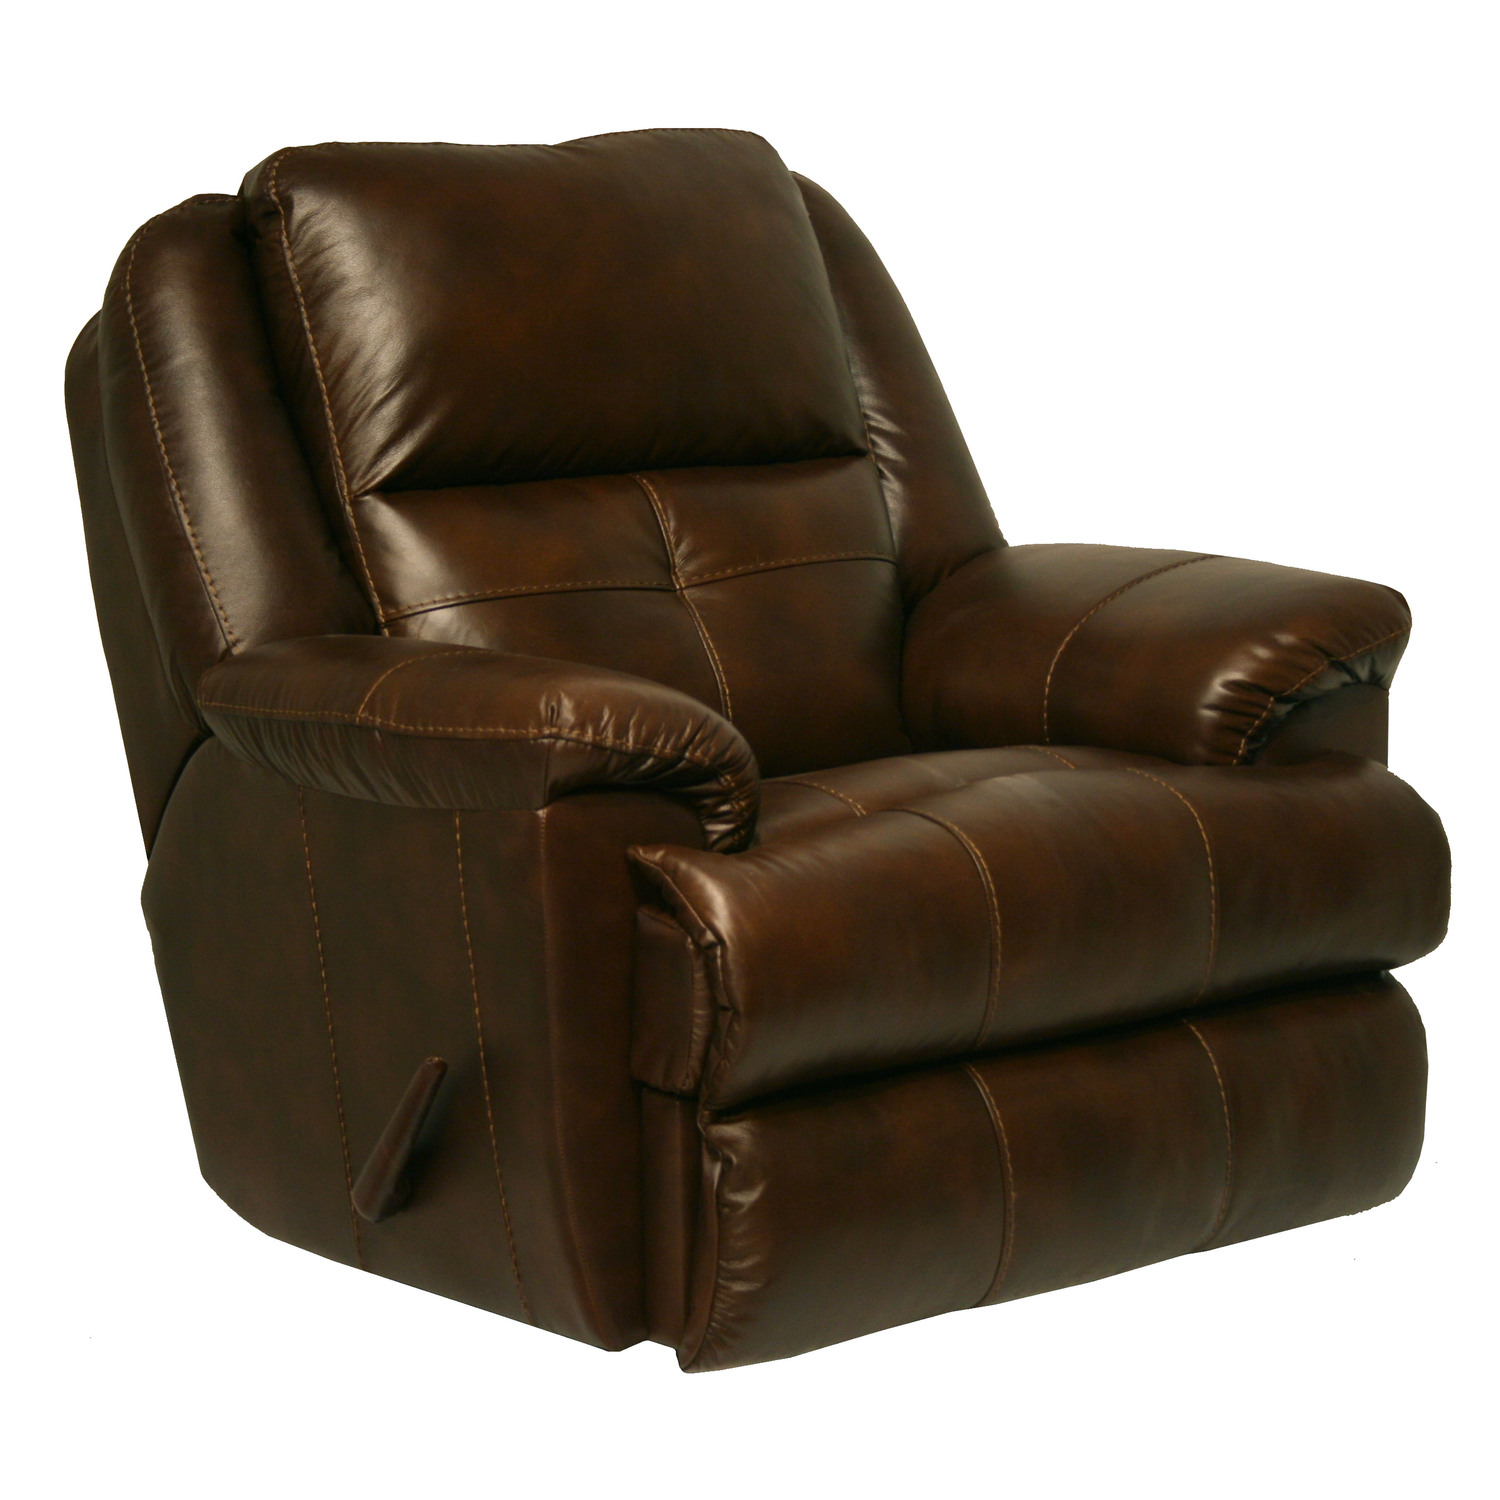 Catnapper Chair Catnapper Crosby Leather Recliner By Oj Commerce 829 00